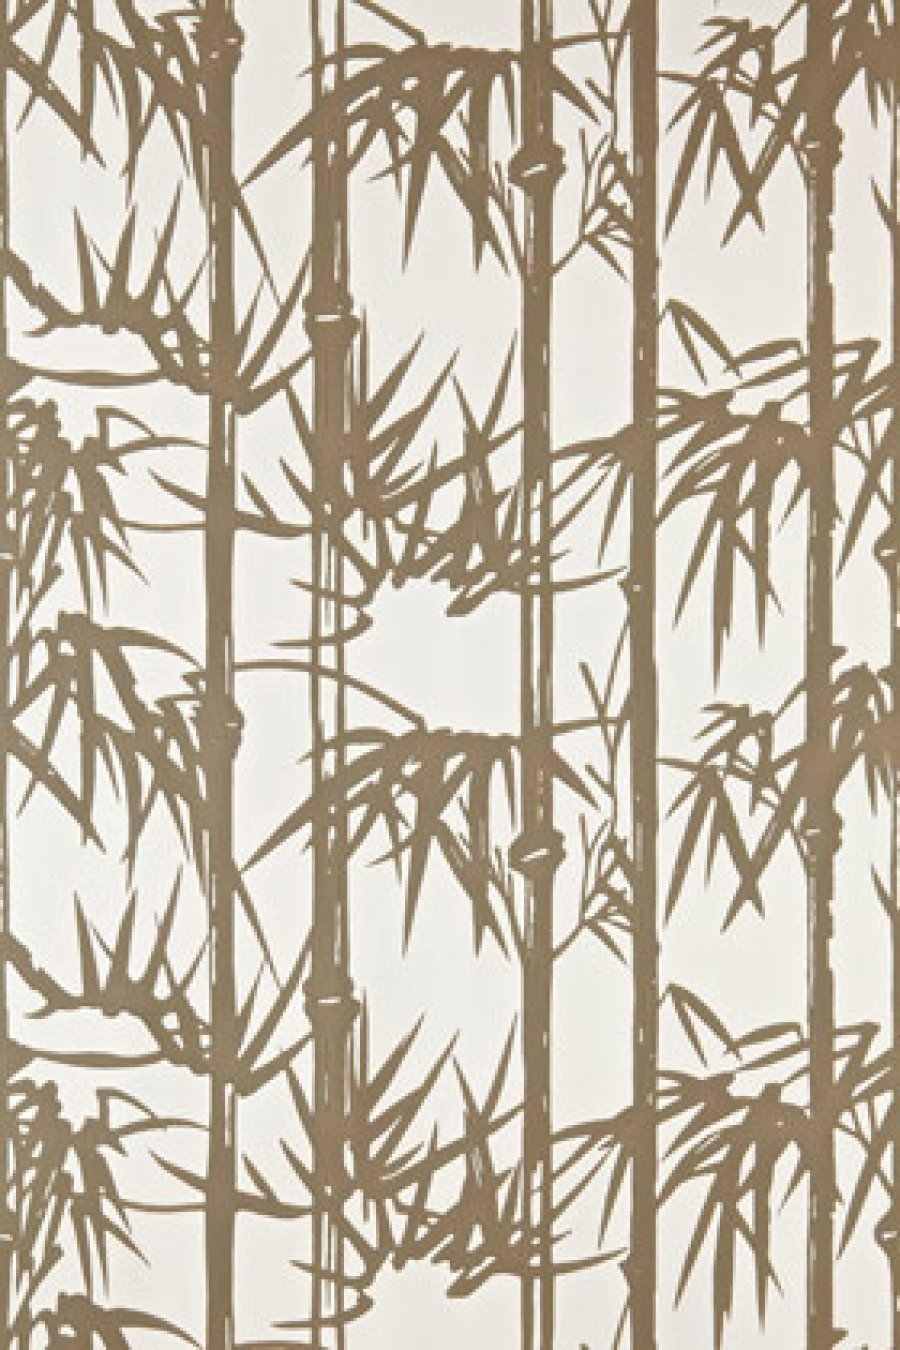 Farrow and ball bamboo bp 2113 wallpaper alexander for Bamboo wallpaper for walls